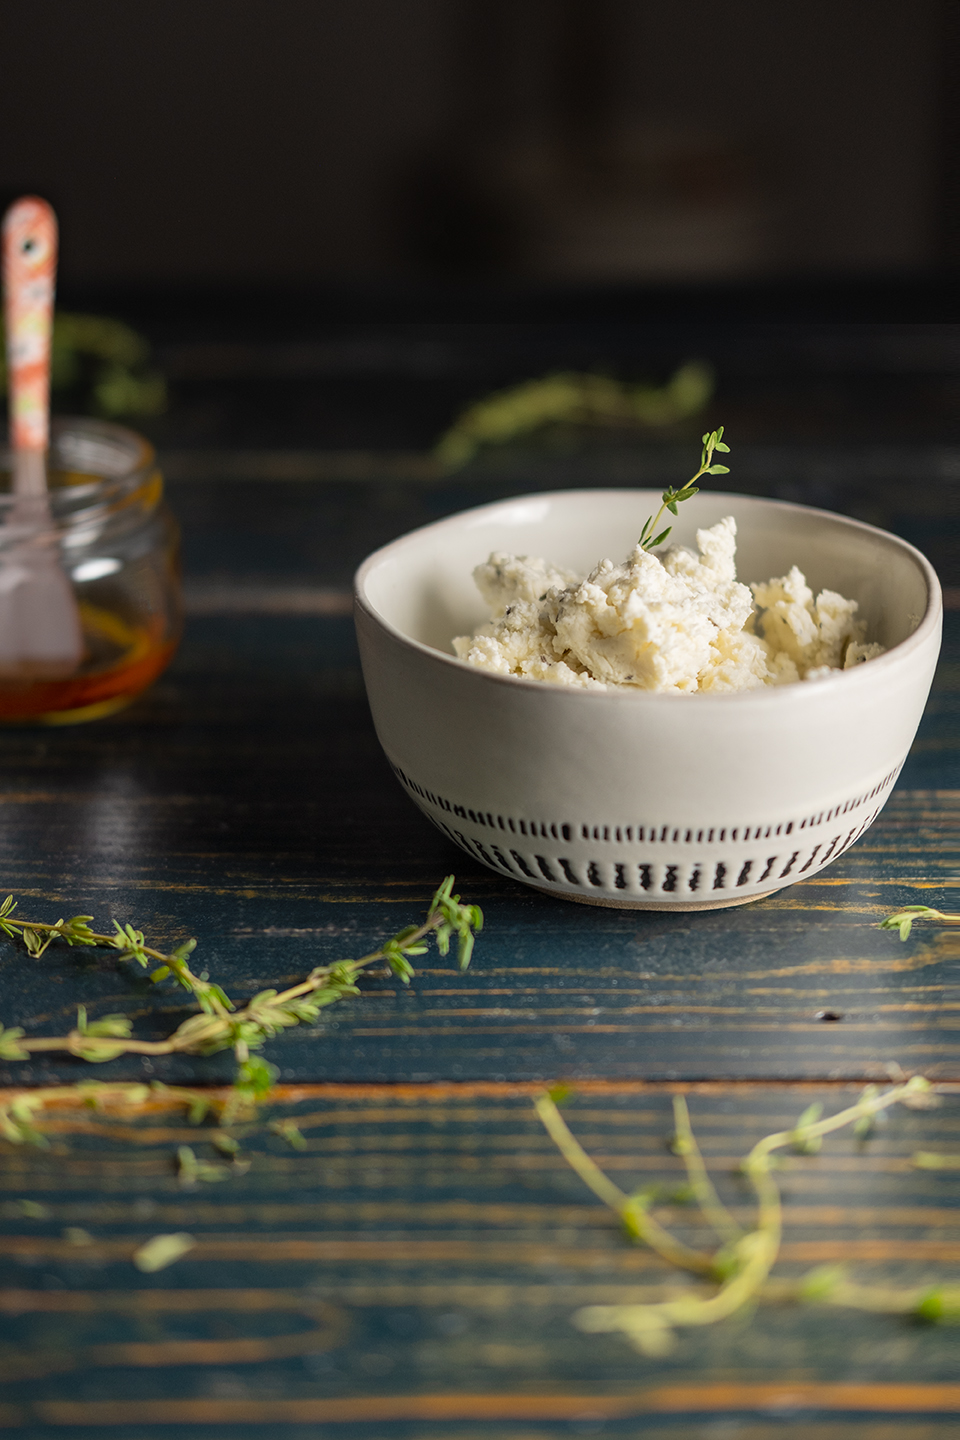 retouched honey goat cheese spread in a bowl surrounded by sprigs of fresh thyme